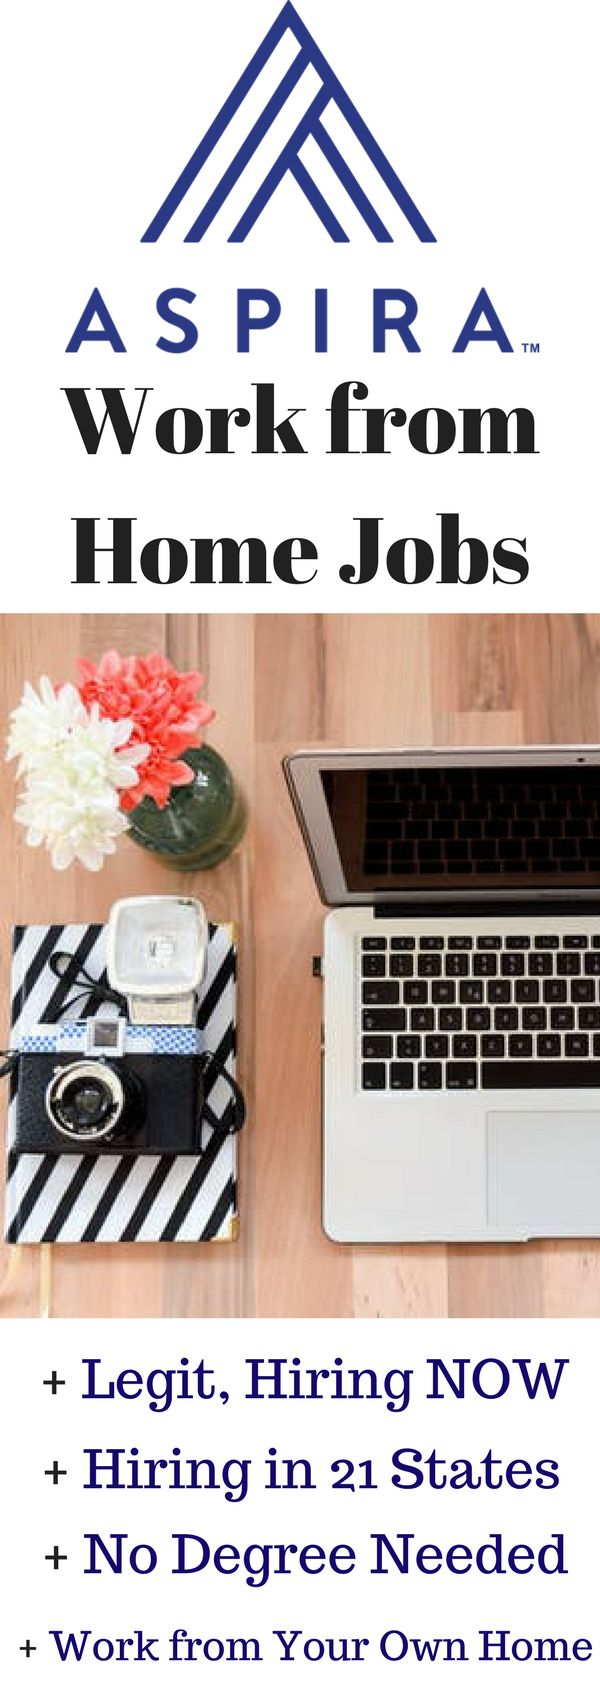 Work from Home Jobs. Work at Home Jobs. Side Hustle Ideas. Apply for Aspira Work from Home Jobs NOW. They are Hiring in 21 States NOW. No Degree or Experience is required. Work from Your Own Home and Get Paid. Get these Legitimate Work from Home Jobs by Aspira. #workfromhomejobs #workfromhome #workathomejobs #workathome #sidehustle #sidehustleideas #love #recipe #diy